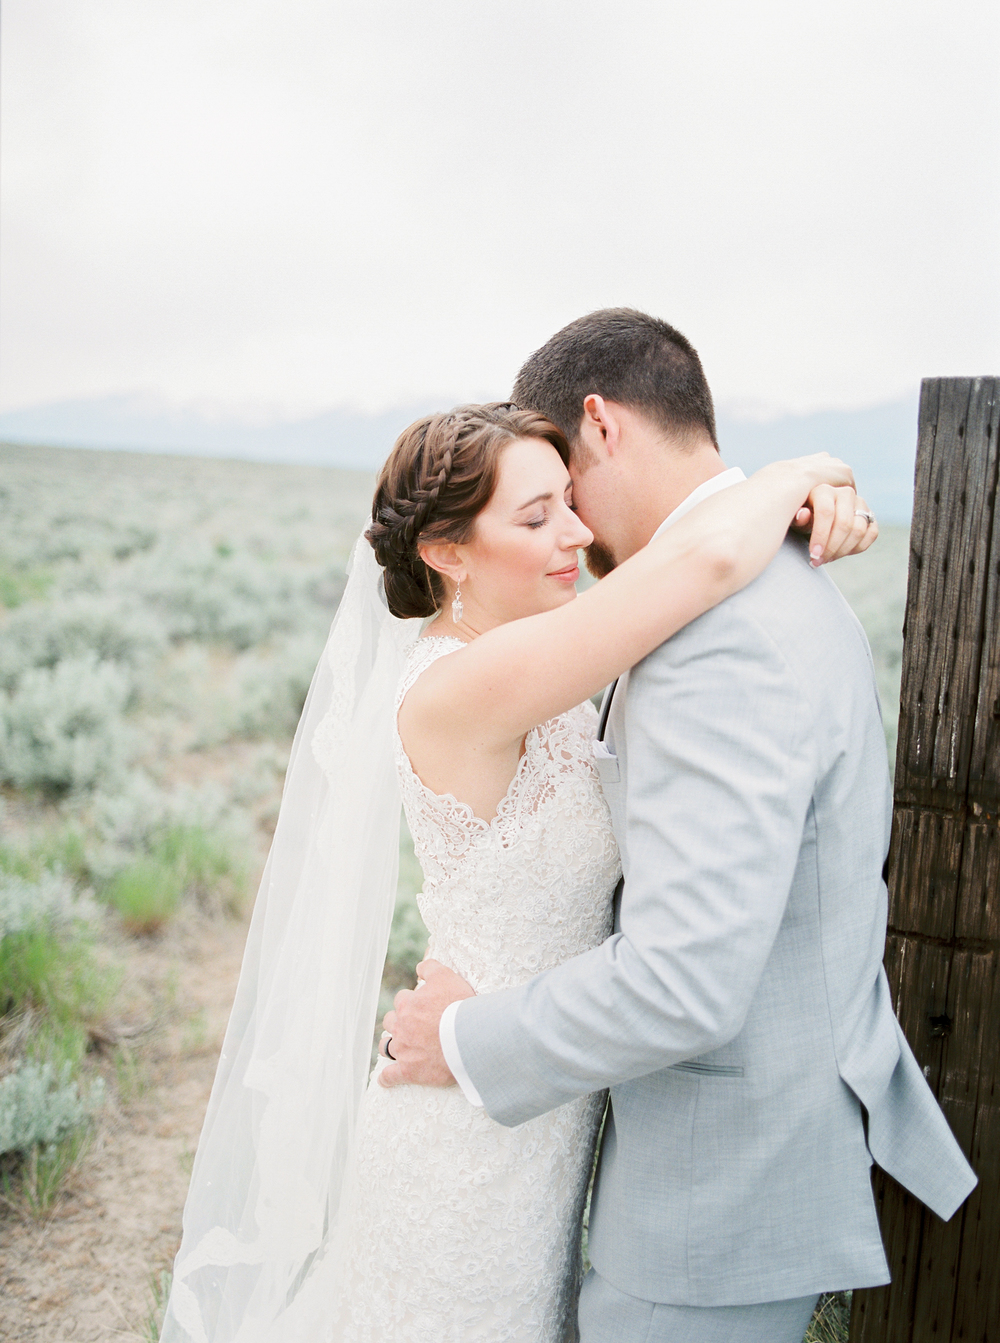 Wedding Couple | Bitterroot Valley | Montana Wedding Photographer | Stella Kelsie Photography